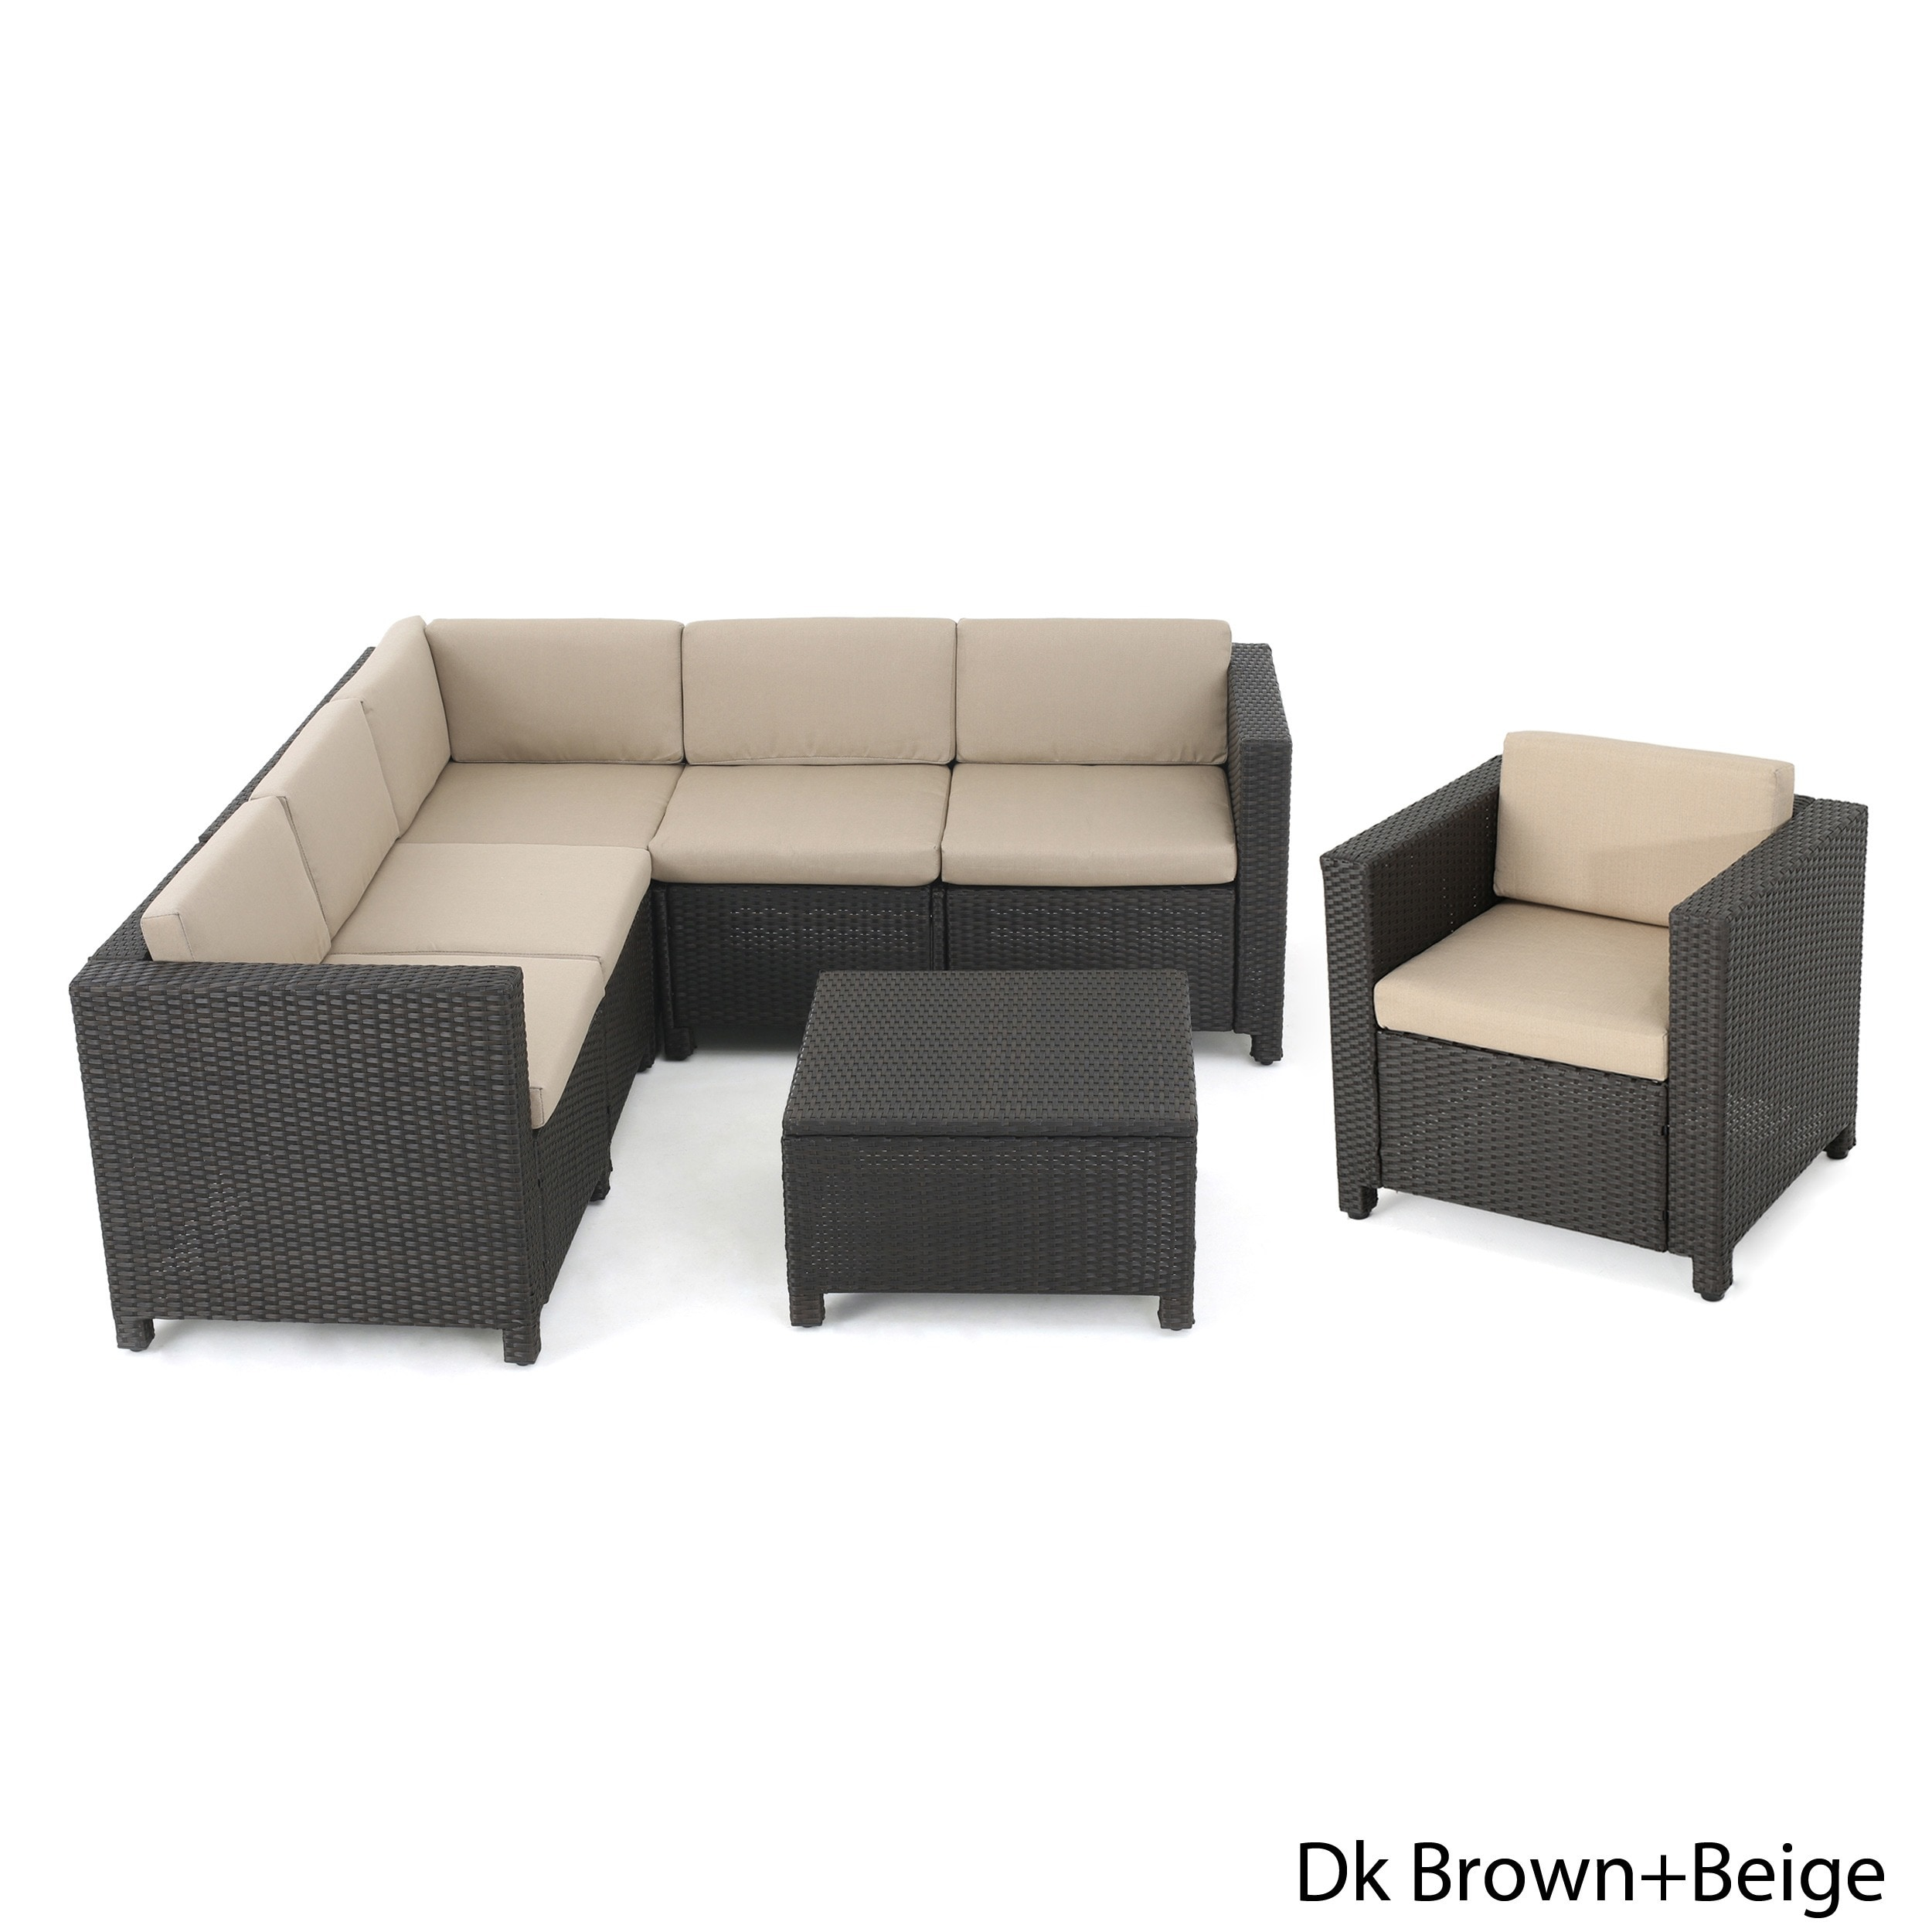 Puerta Outdoor 7-piece Wicker V-Shaped Sectional Sofa Set...